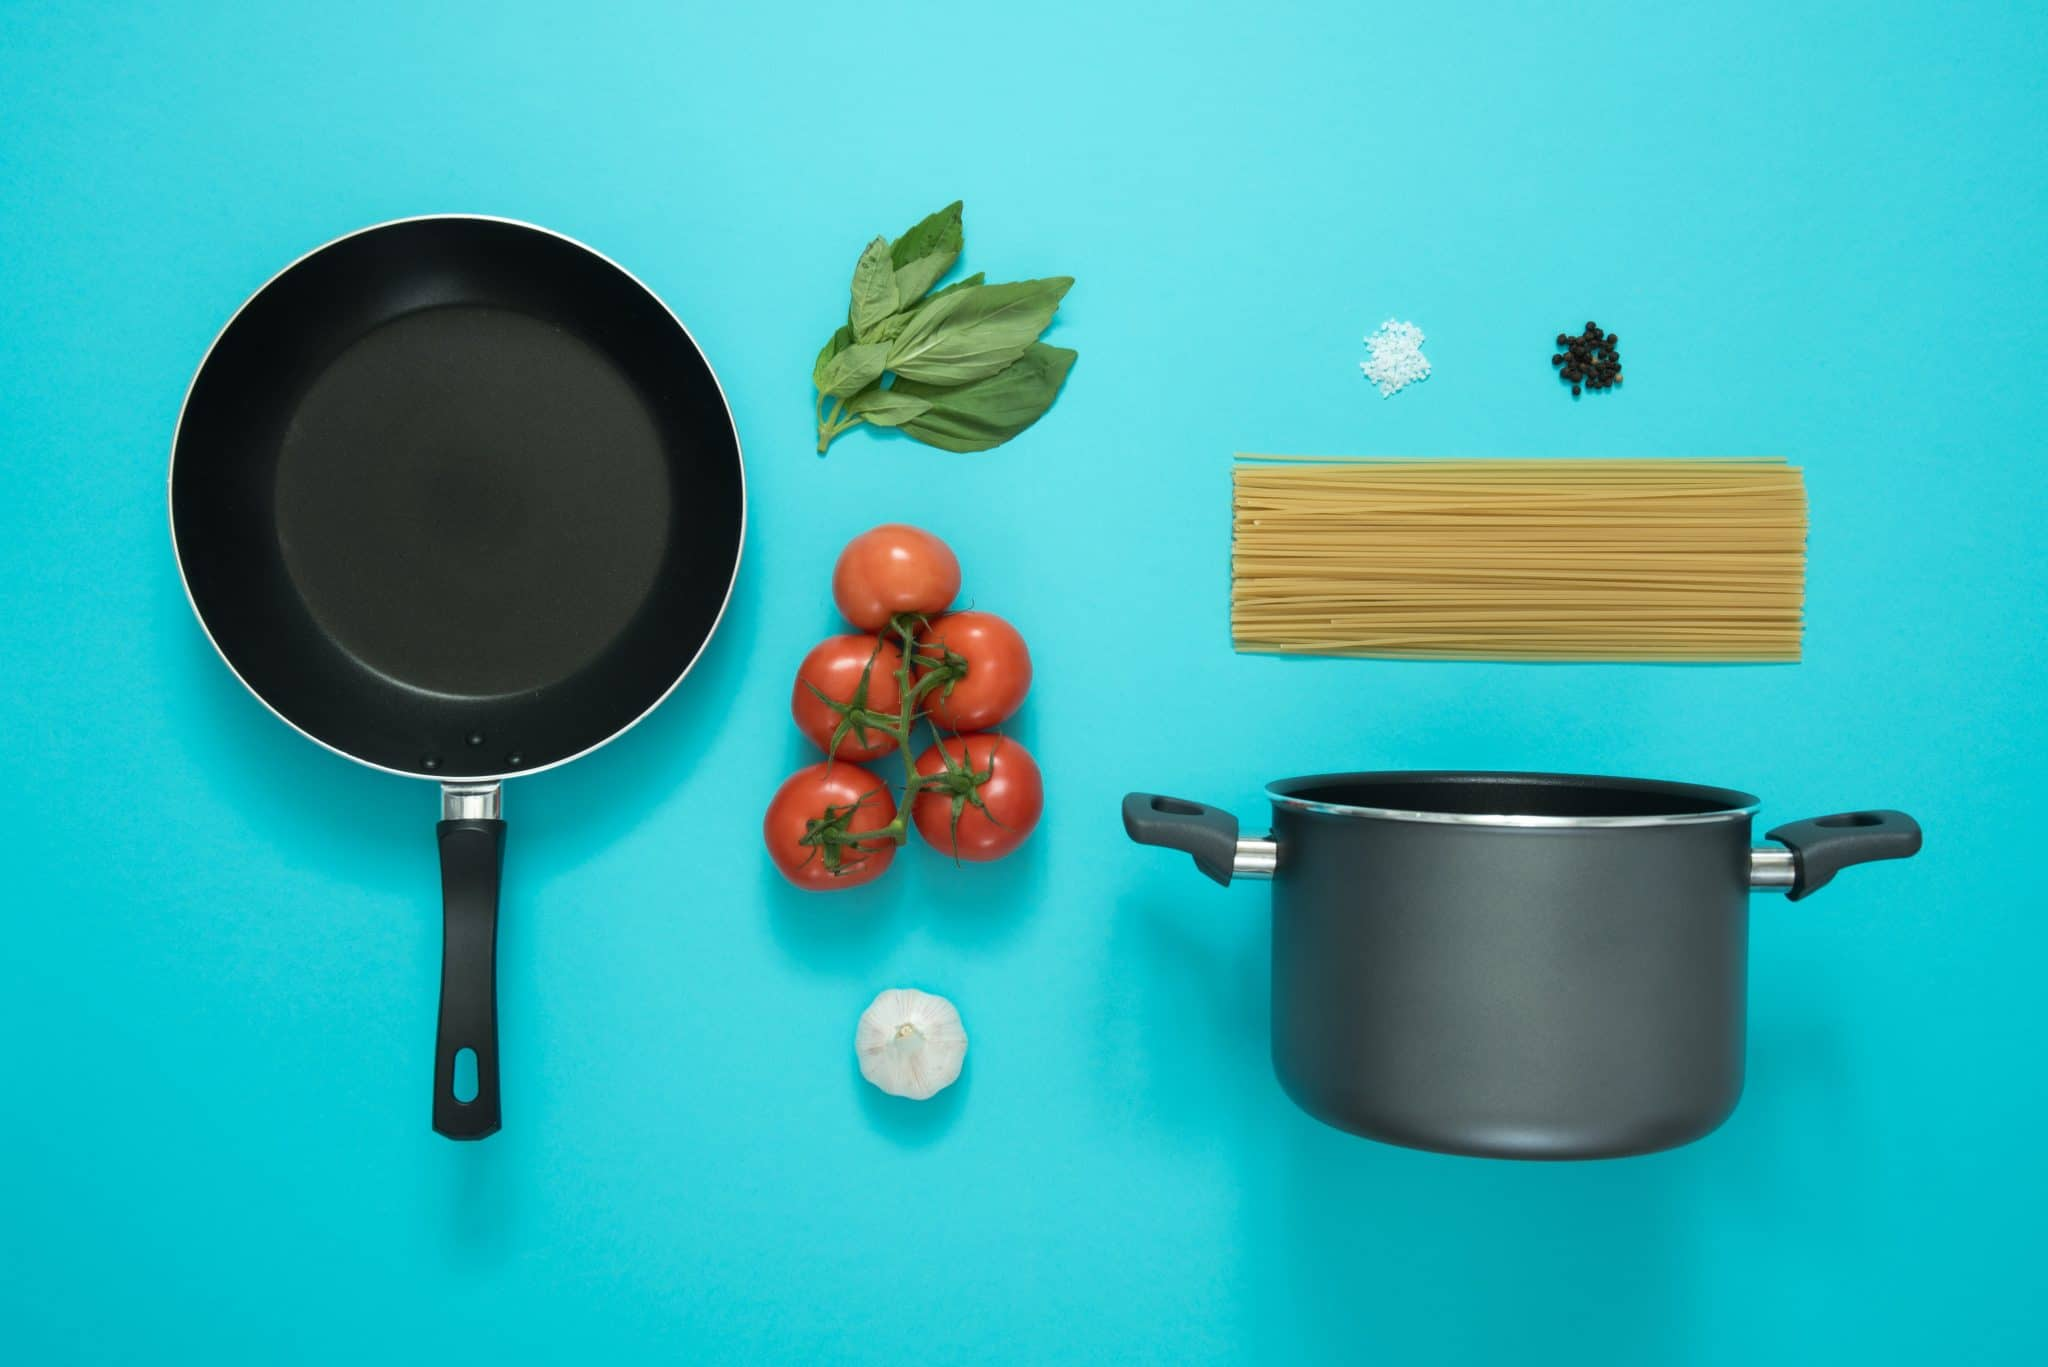 ᐅ GREENPAN REVIEWS • An In-Depth Look at Ceramic Nonstick